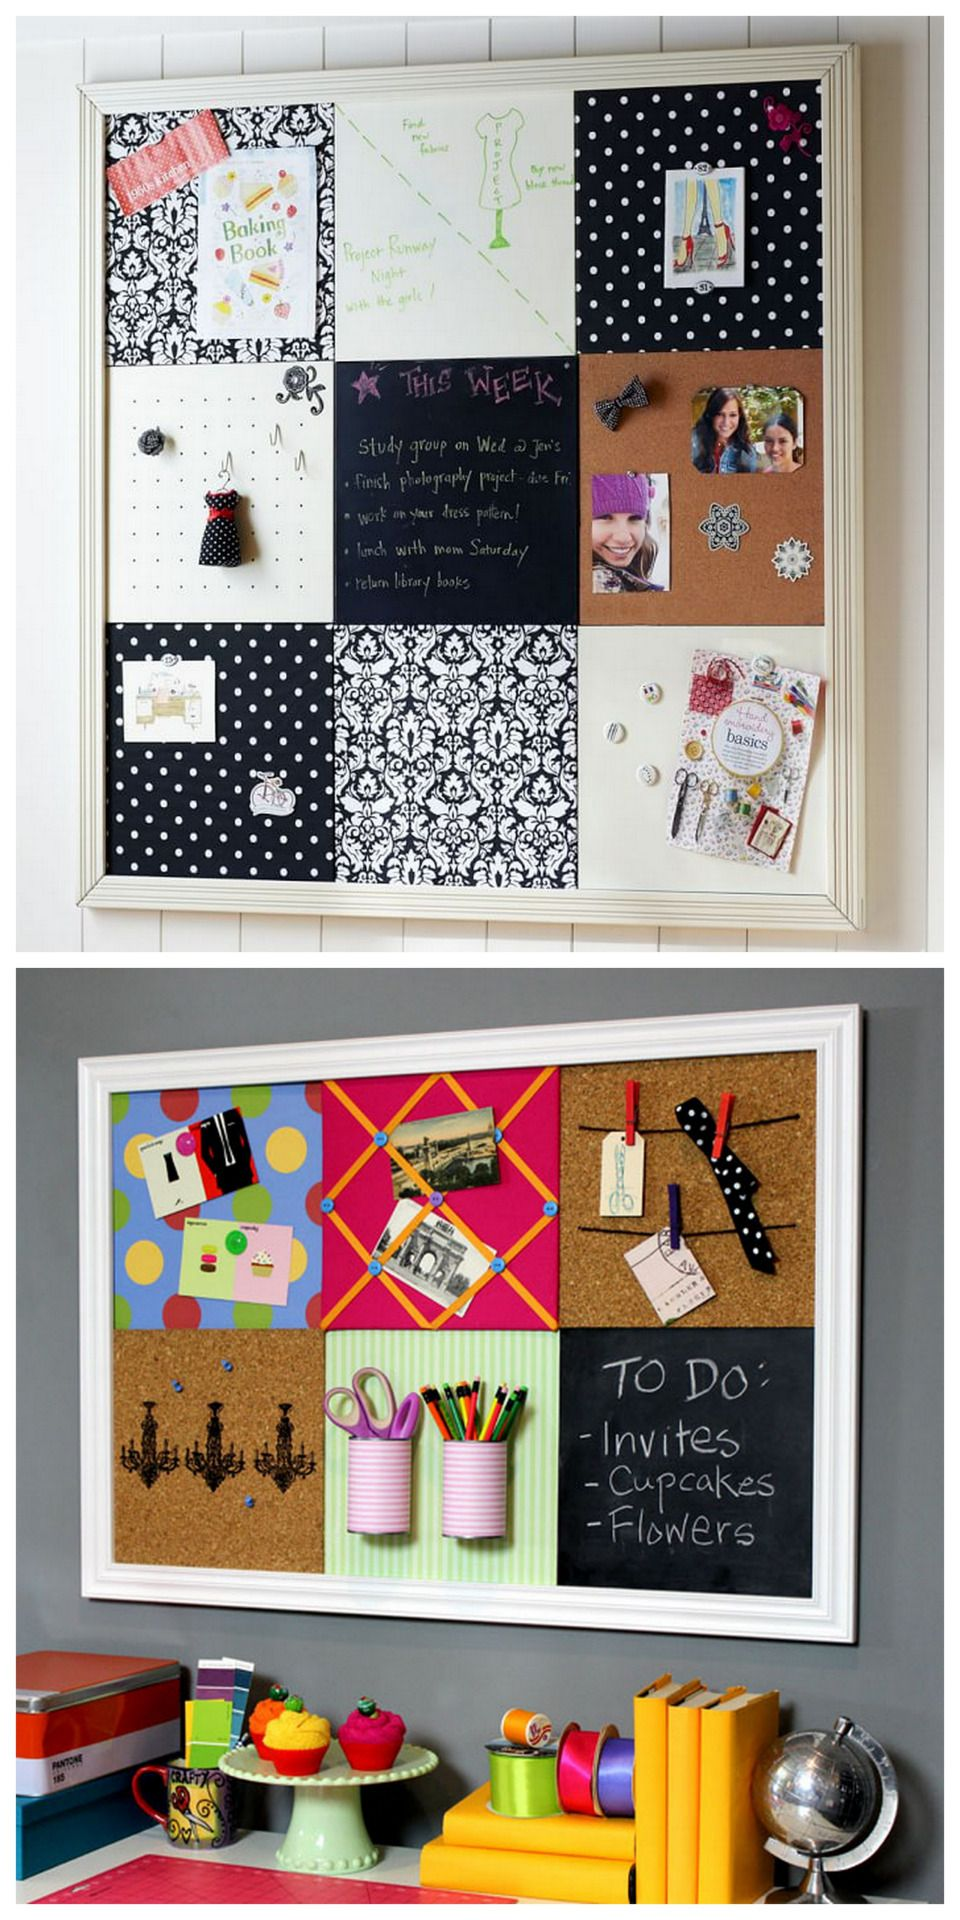 Diy Pottery Barn Teen Knockoff Bulletin Board Tutorial